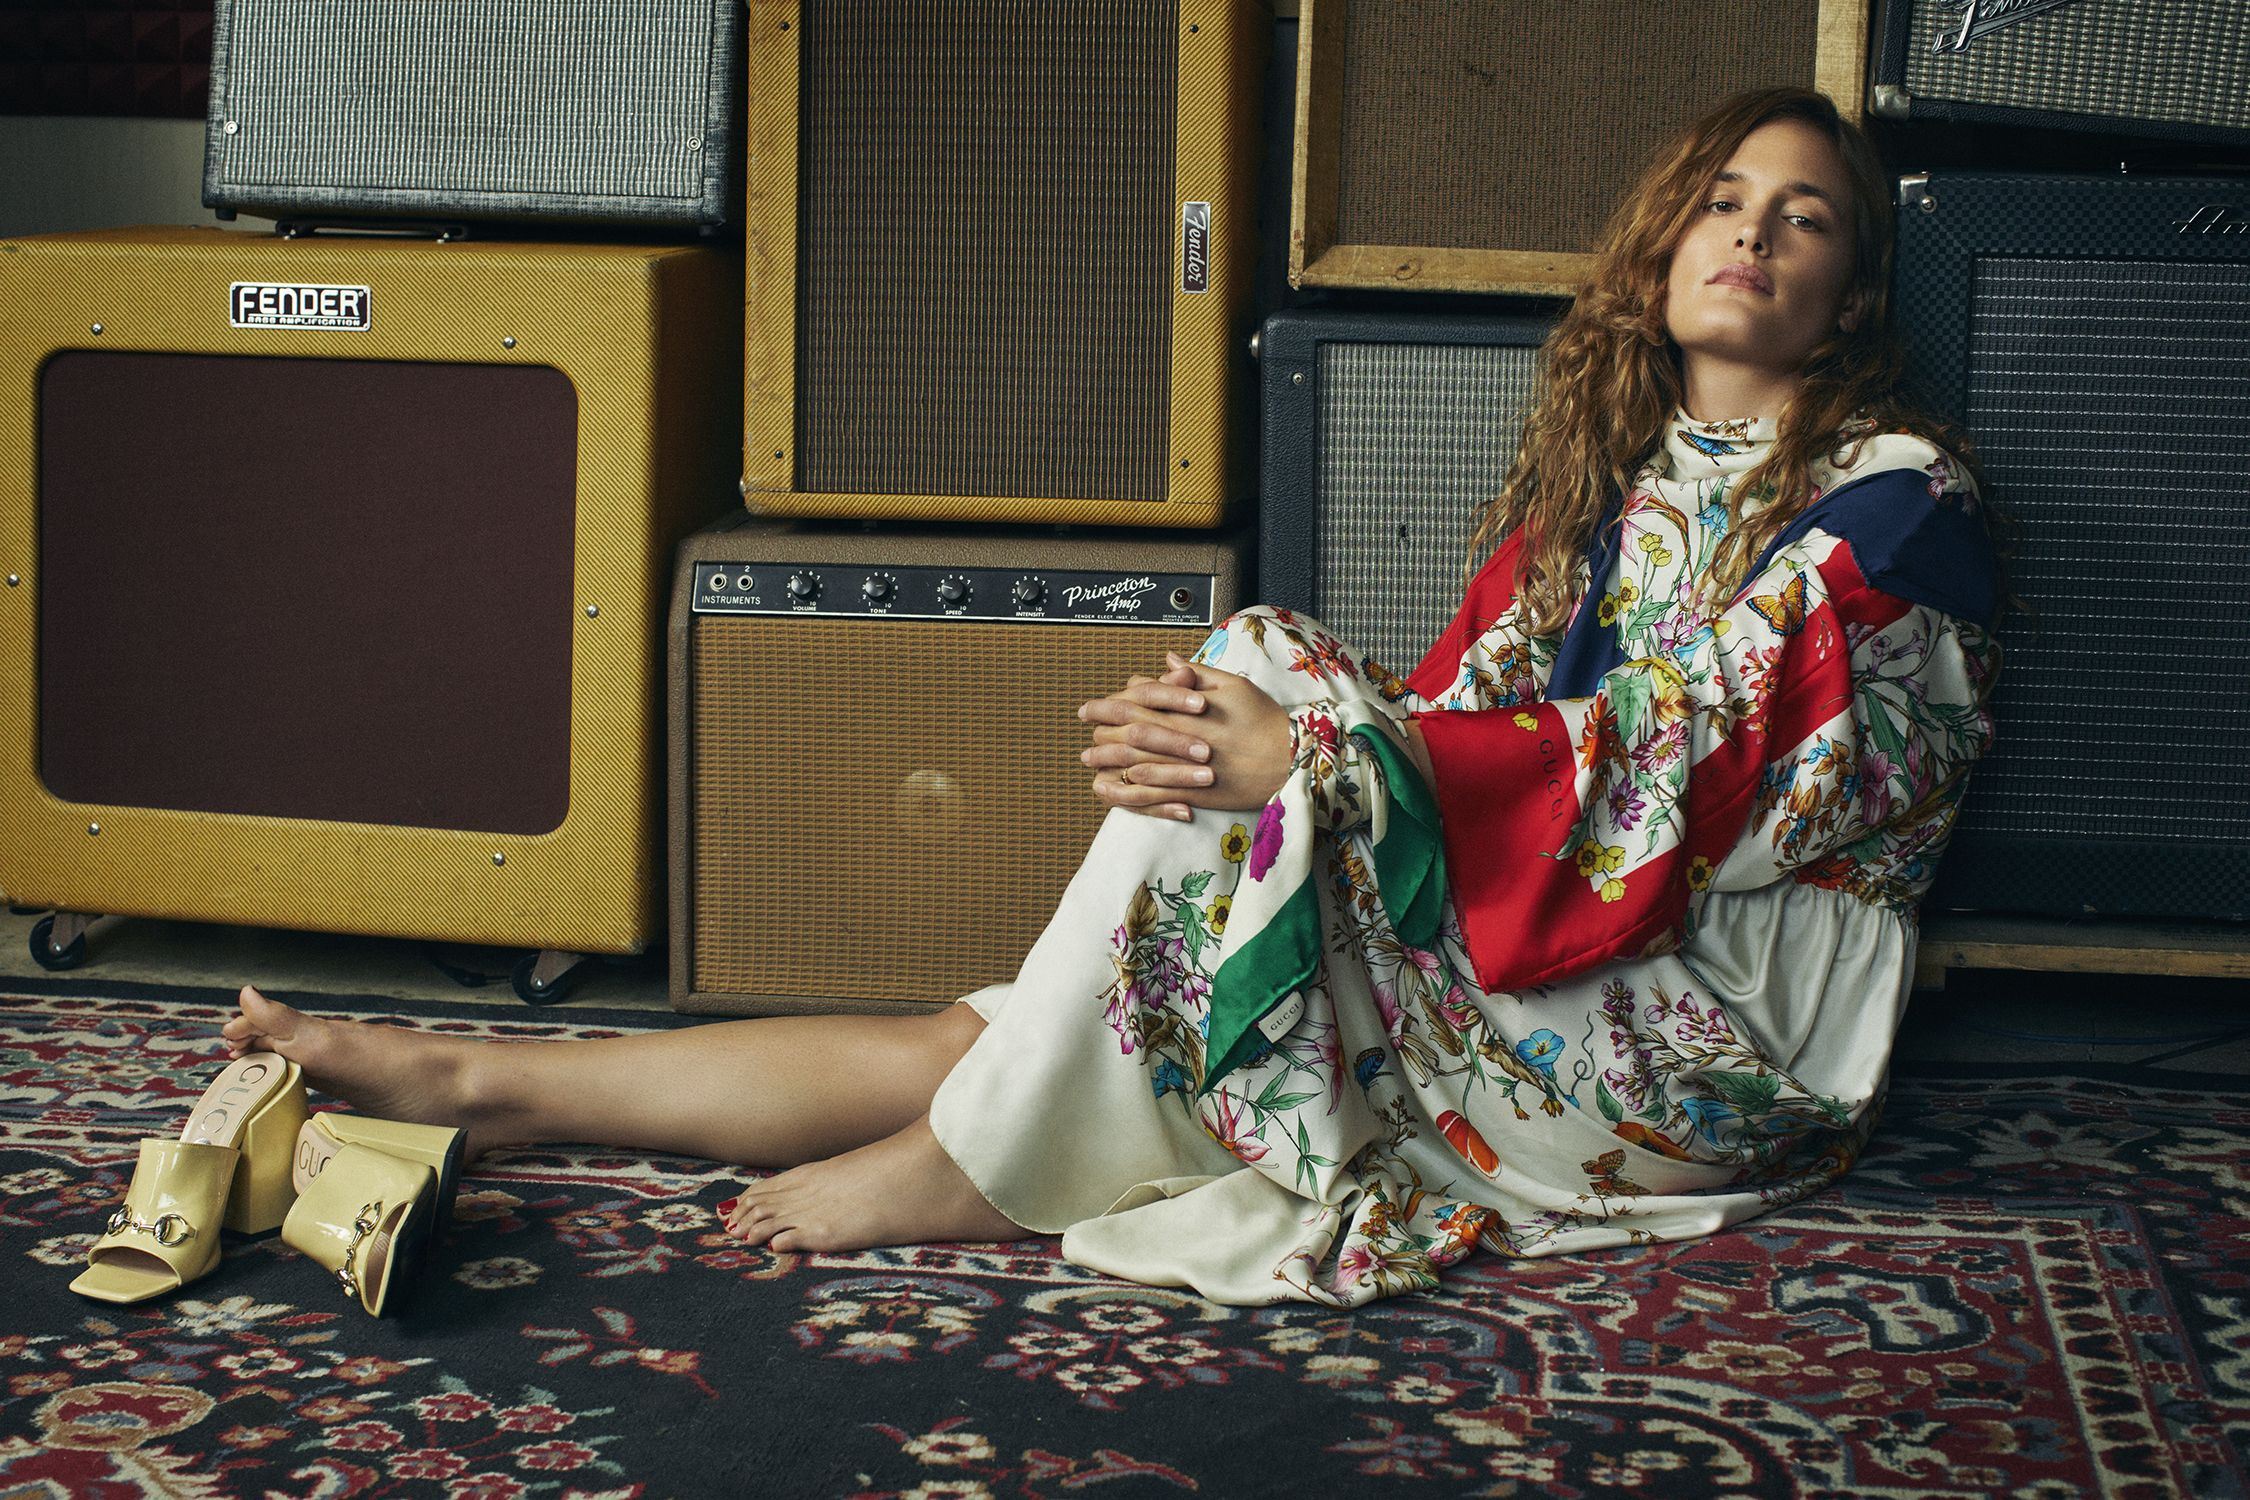 Kelly Zutrau and Joe Valle of indie pop band Wet talk about their new album, fashion obsessions, and what's next for the duo.